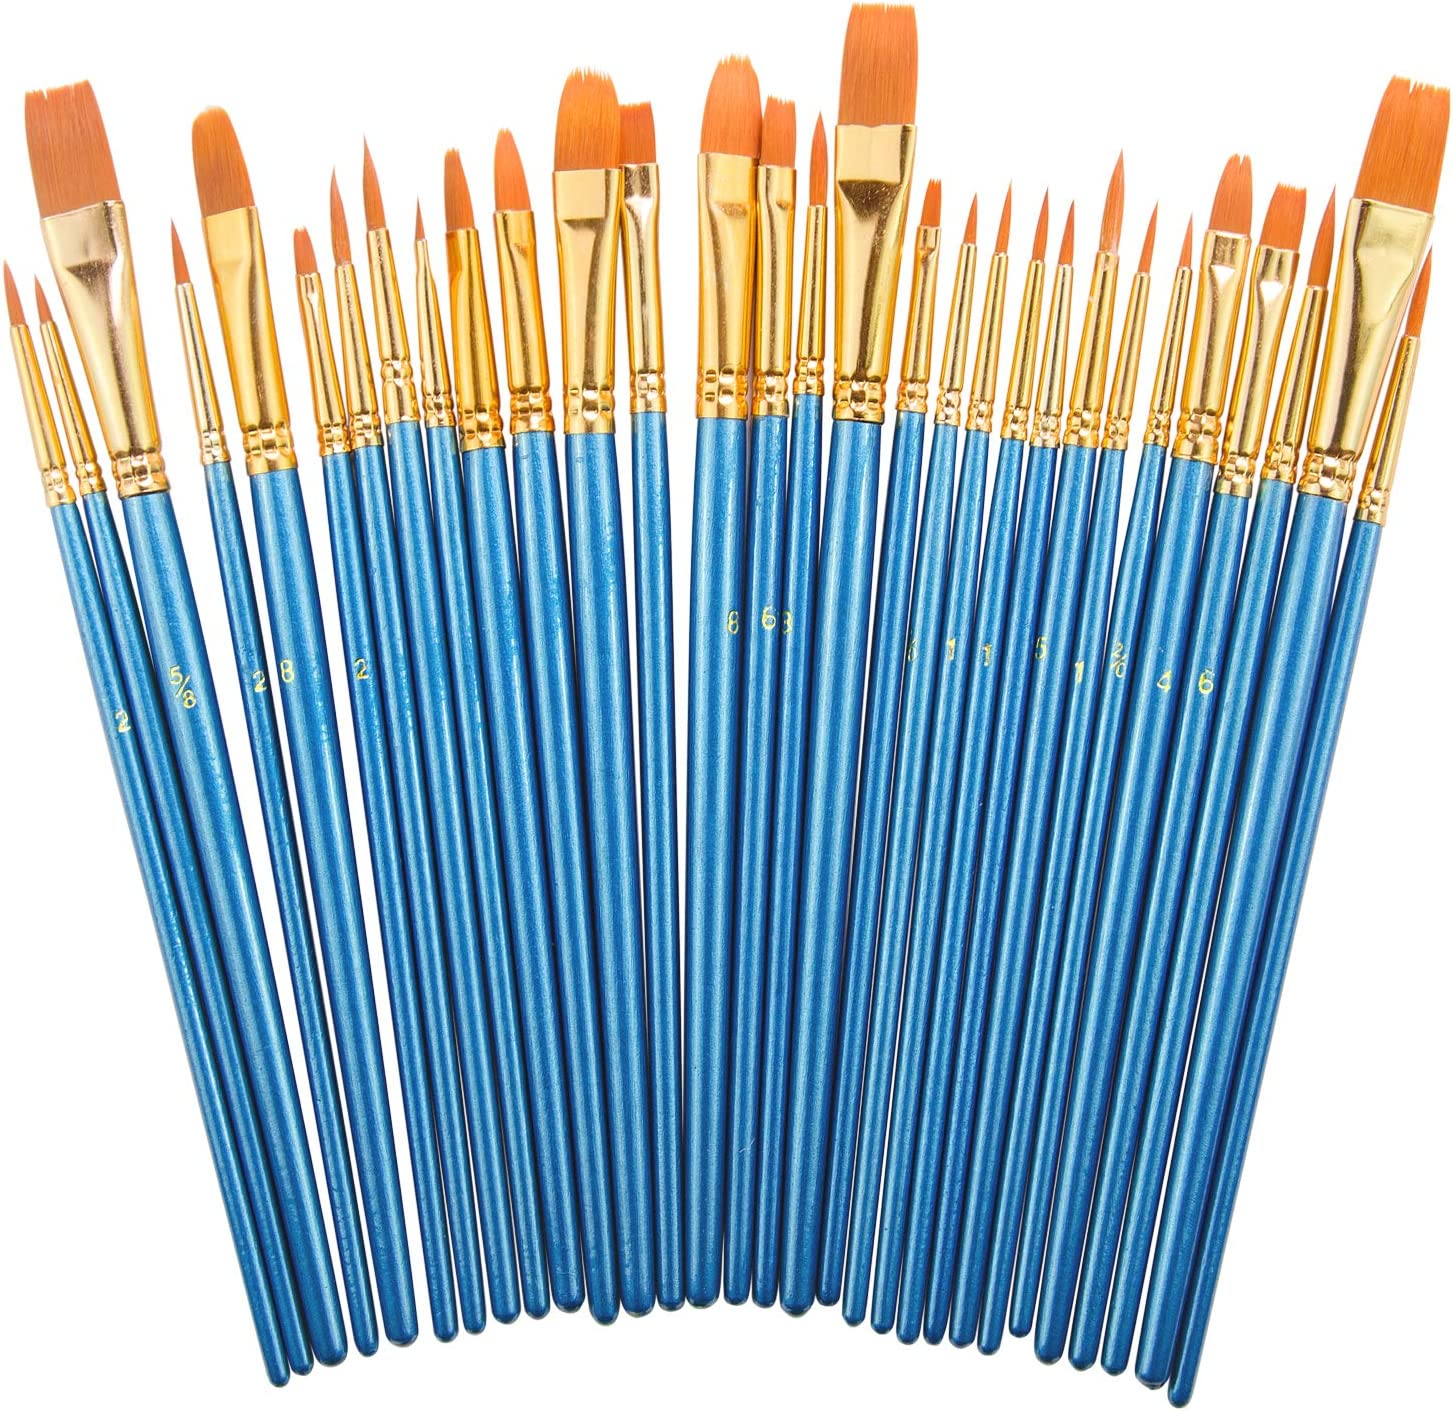 Paint Brush Set by heartybay 20 pcs Nylon Hair Brushes for Acrylic Oil Watercolor Painting Artist Professional Painting Kits